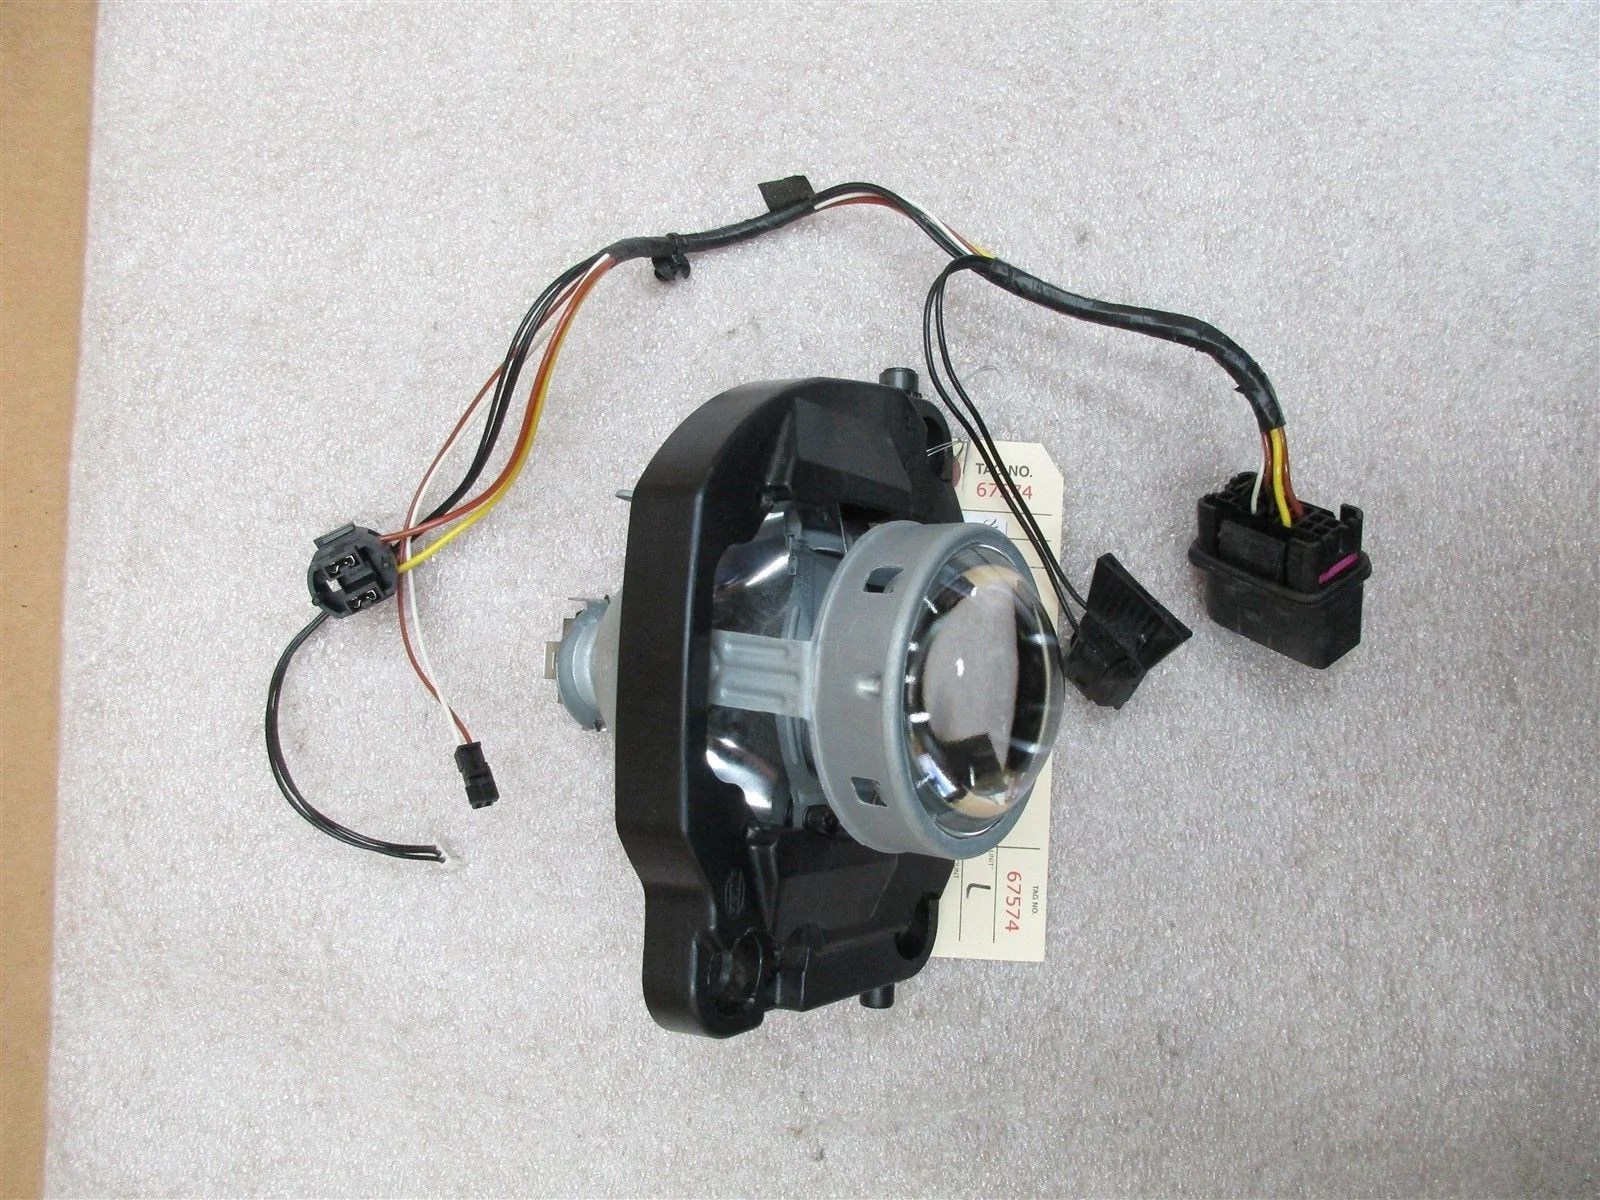 hight resolution of 08 cayenne s awd porsche 957 l headlight hardware wiring harness 122 873